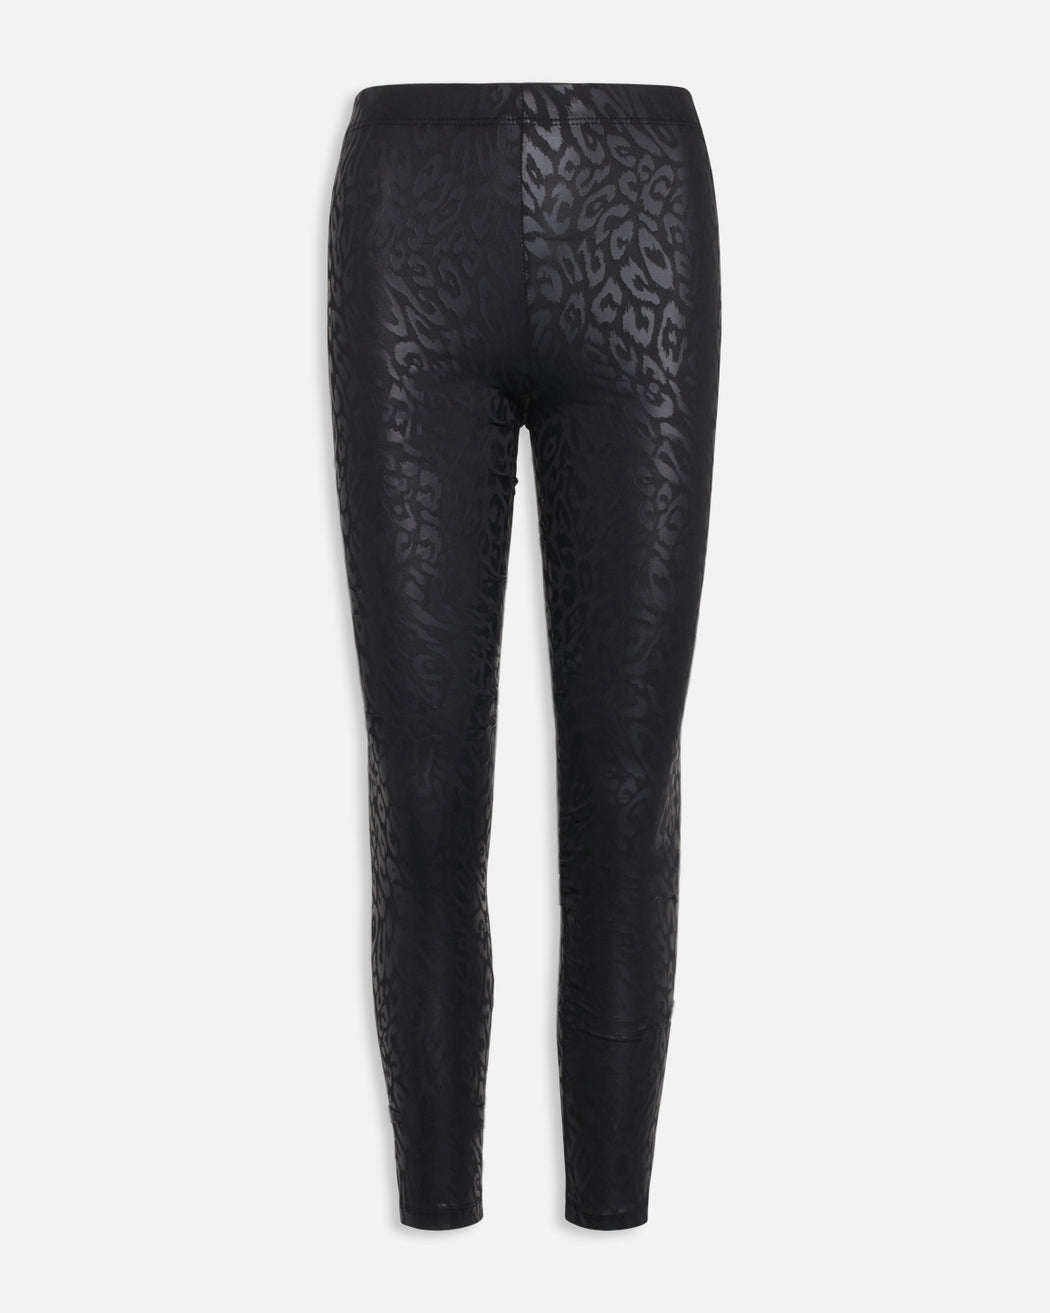 Pasa black leggings